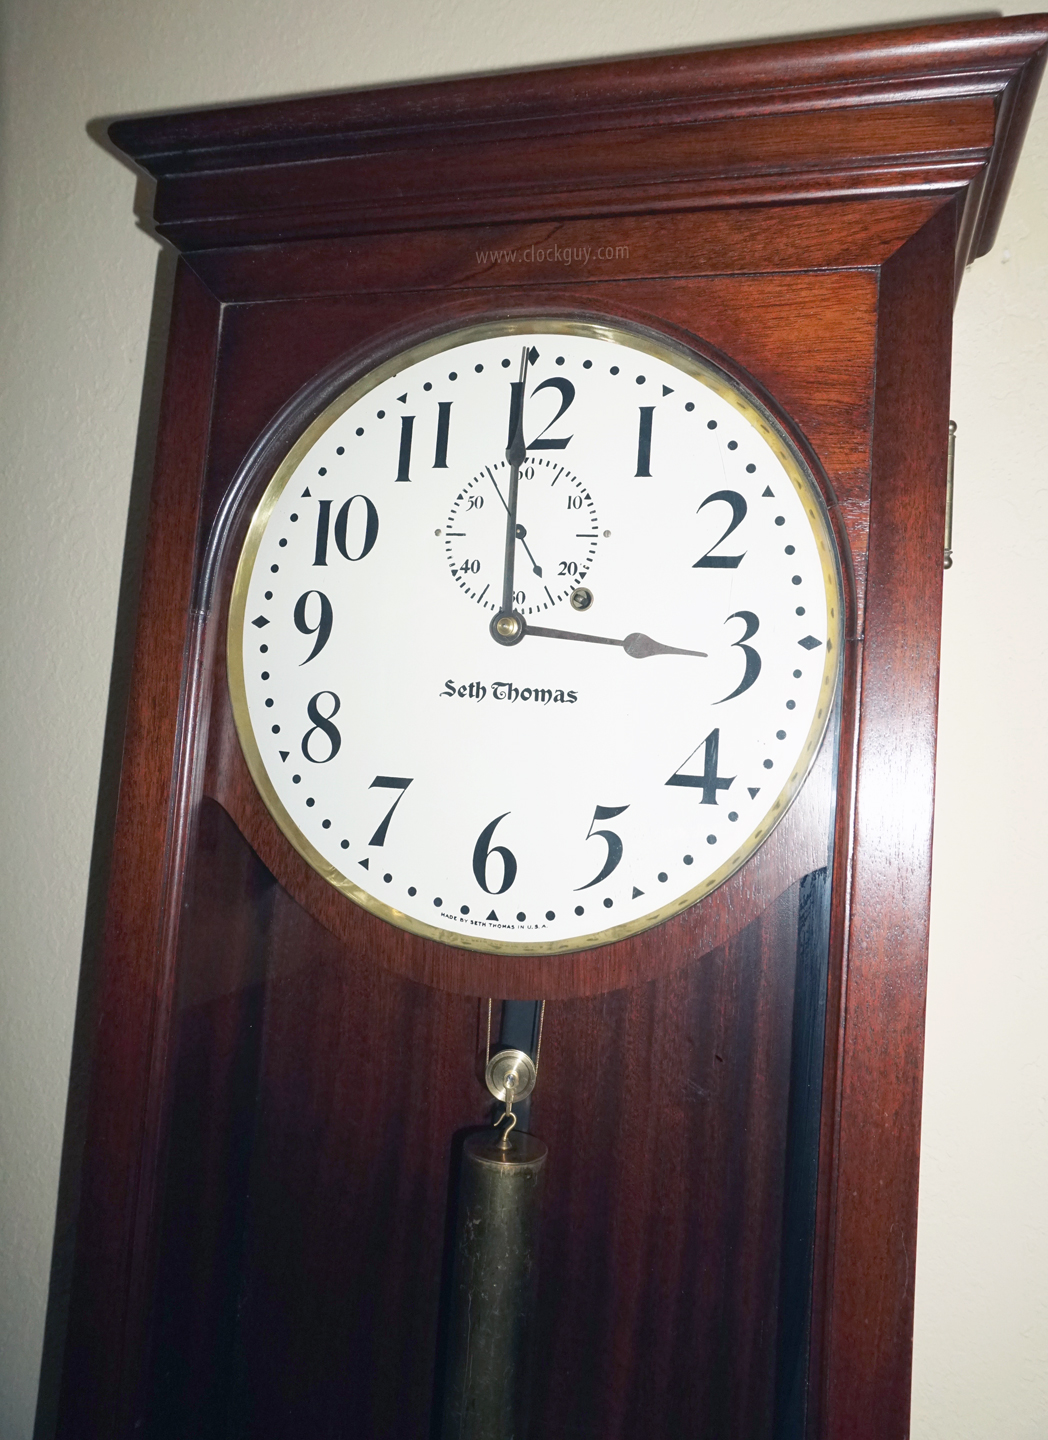 Antique clocks guy we bring antique clocks collectors and buyers click amipublicfo Choice Image